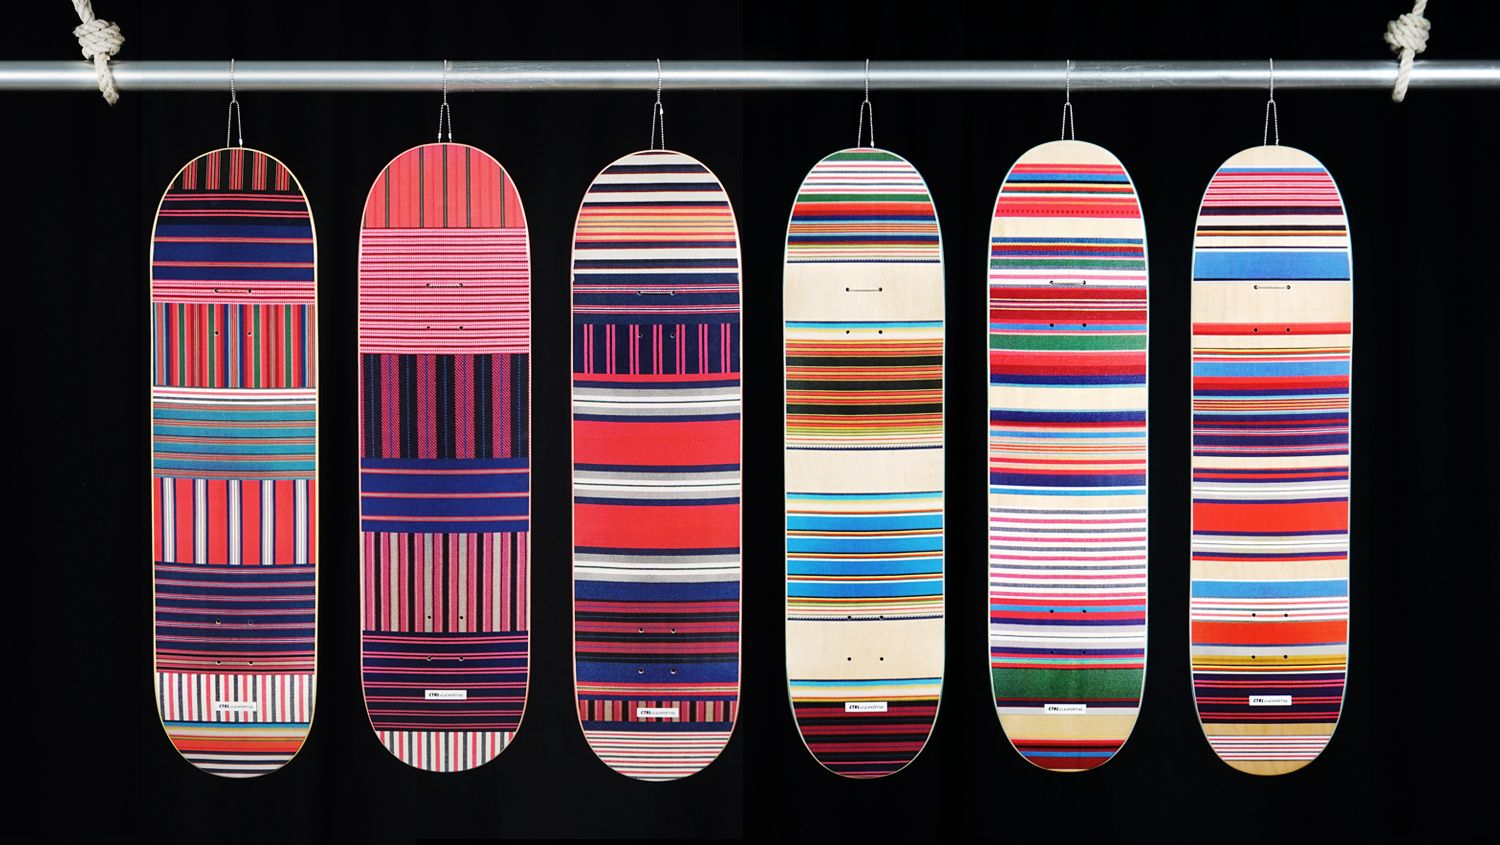 ?url=ctrlclothing-production.s3.amazonaws.com%2fsystem%2fdragonfly%2fproduction%2f2014%2f04%2f04%2f14_07_02_78_banneri_isokoko_boards_in_store